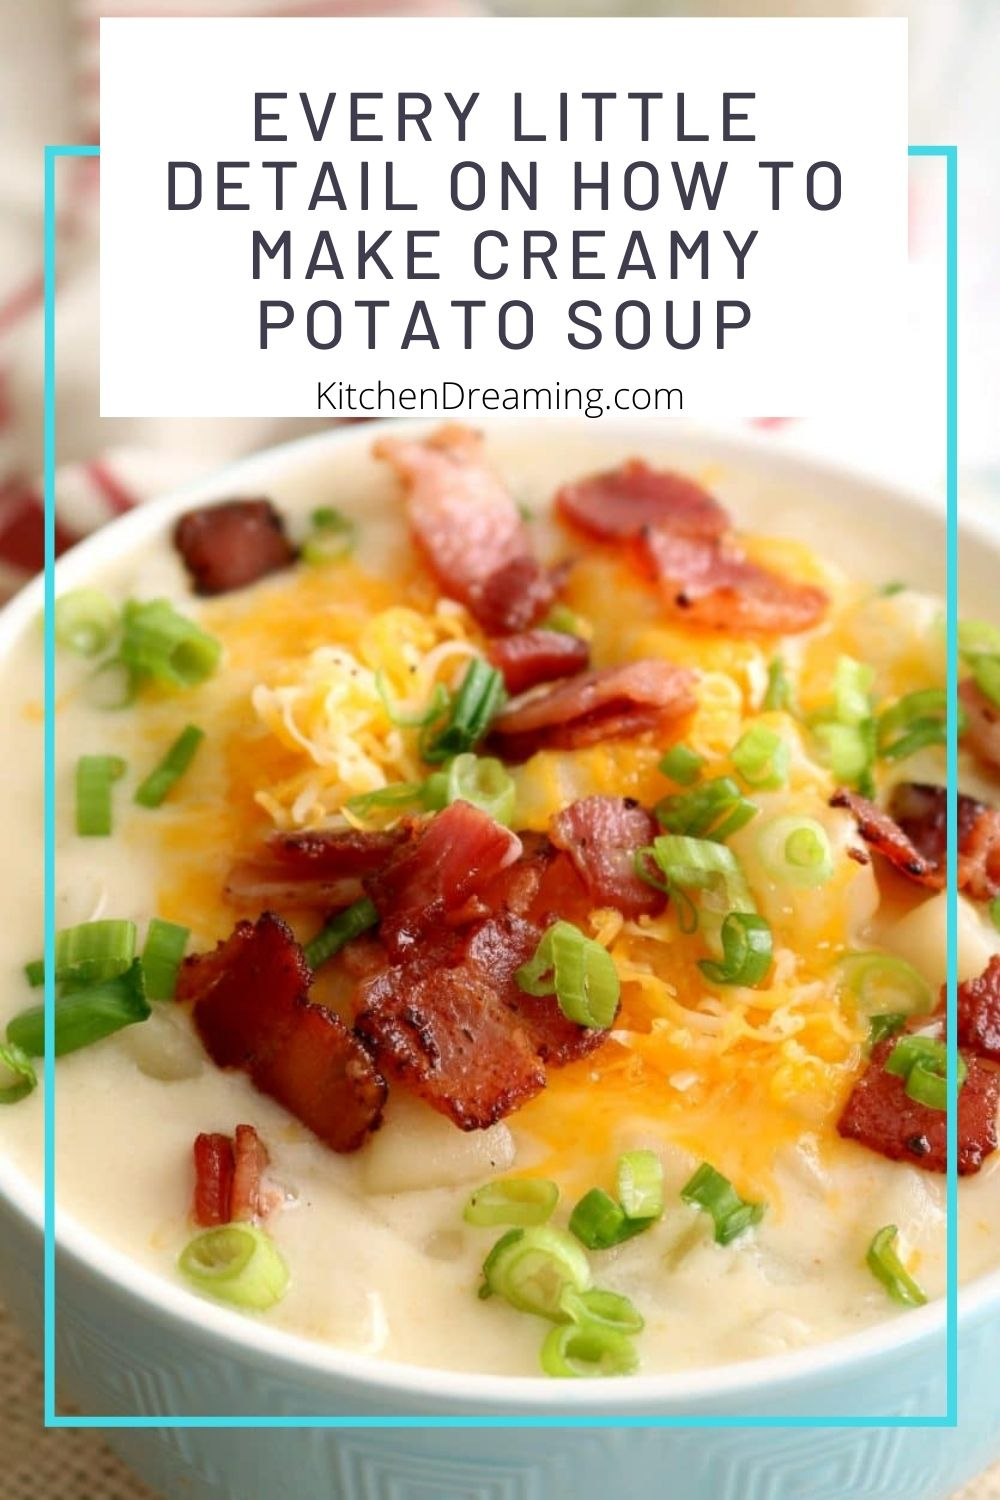 A pinnable image of a bowl of loaded baked potato soup topped with bacon, shredded cheddar cheese, and green onions as garnish.